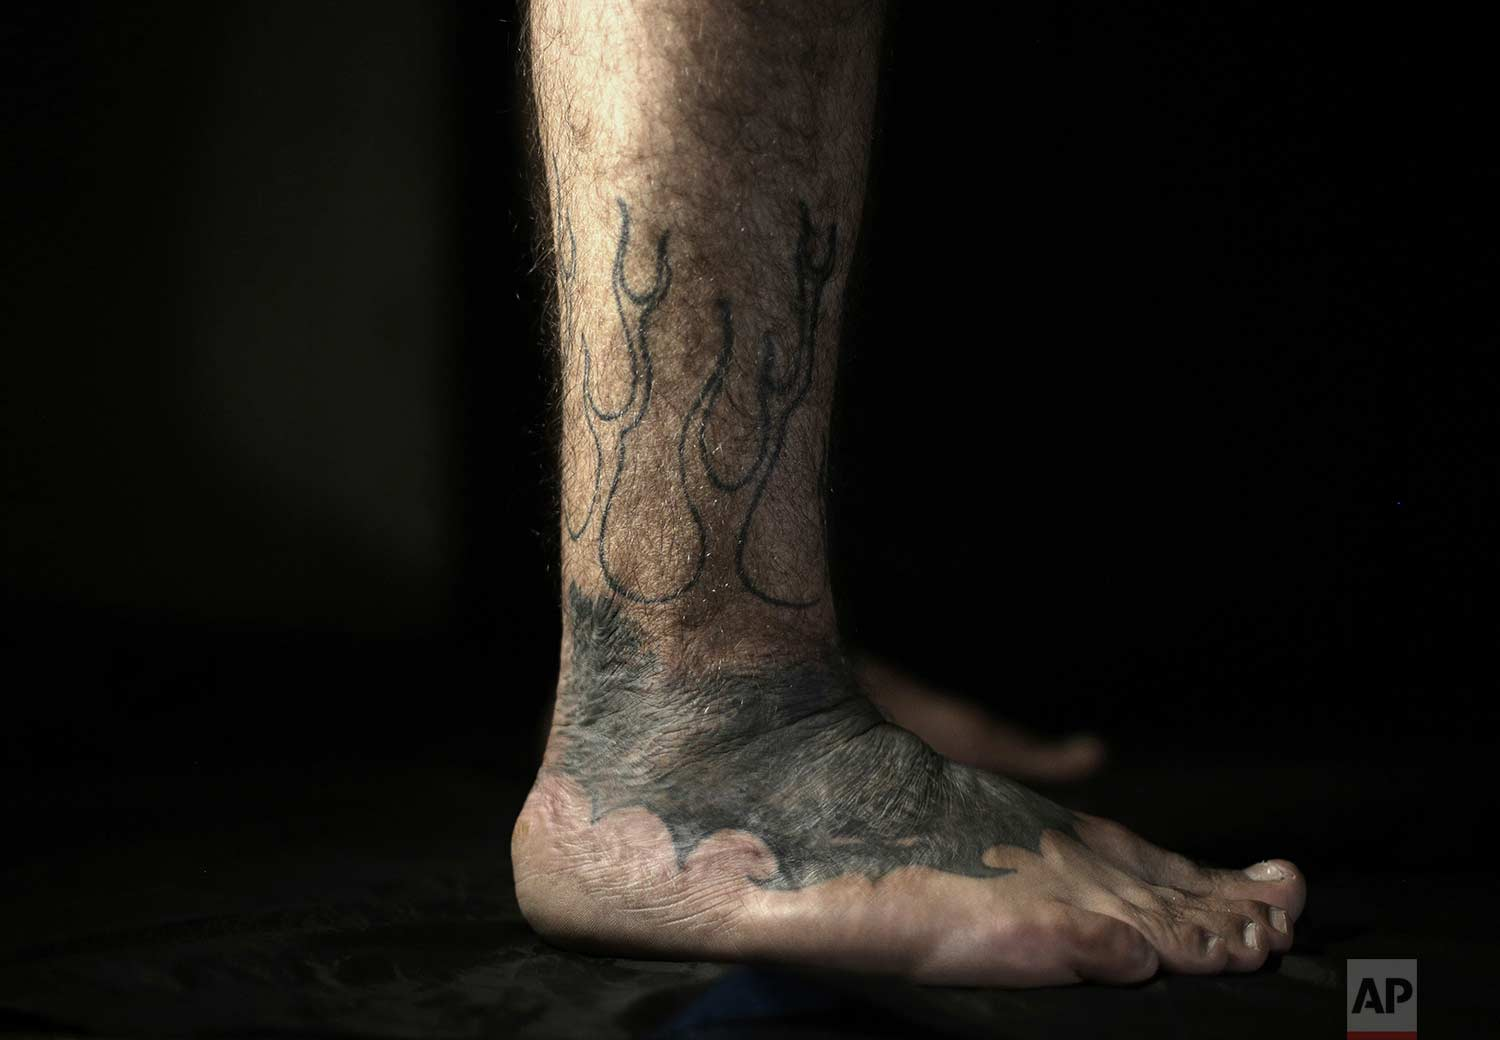 In this Wednesday, Oct. 24, 2018, photo, Iraqi soldier Saad Khudeir displays his tattoo on his leg covering scars of the burns he suffered in a car bomb attack, in Baghdad, Iraq. The tattoos run all over his body. They are not only to hide his war scars, but also to document his emotional ones. (AP Photo/Hadi Mizban)